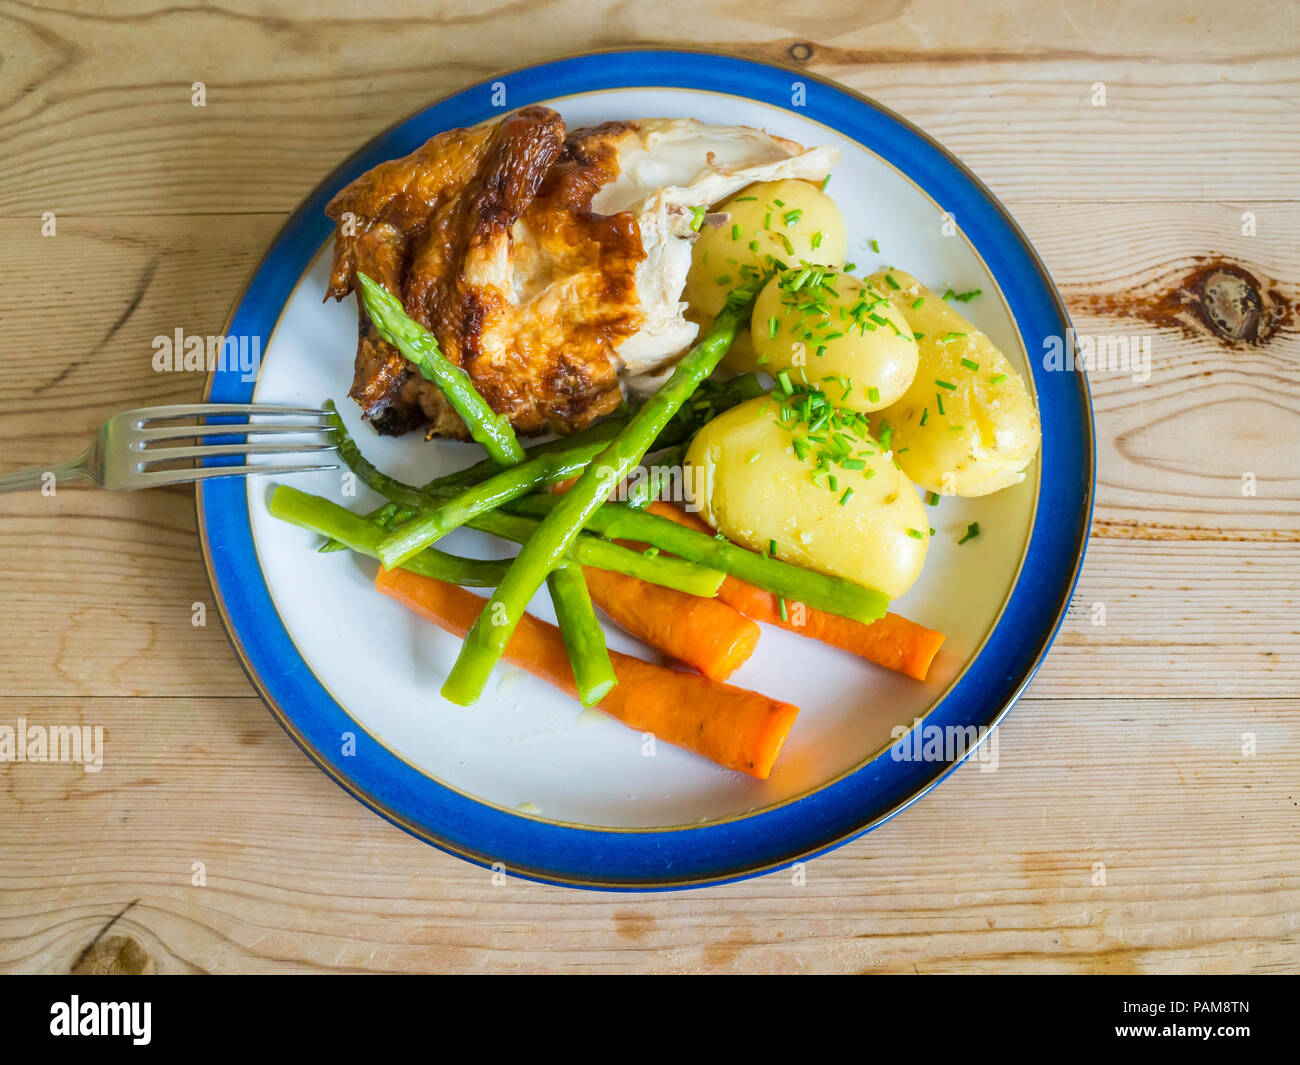 Lunch  a quarter roast chicken  with new potatoes carrots, green beans and chopped chives on a wooden table top Stock Photo